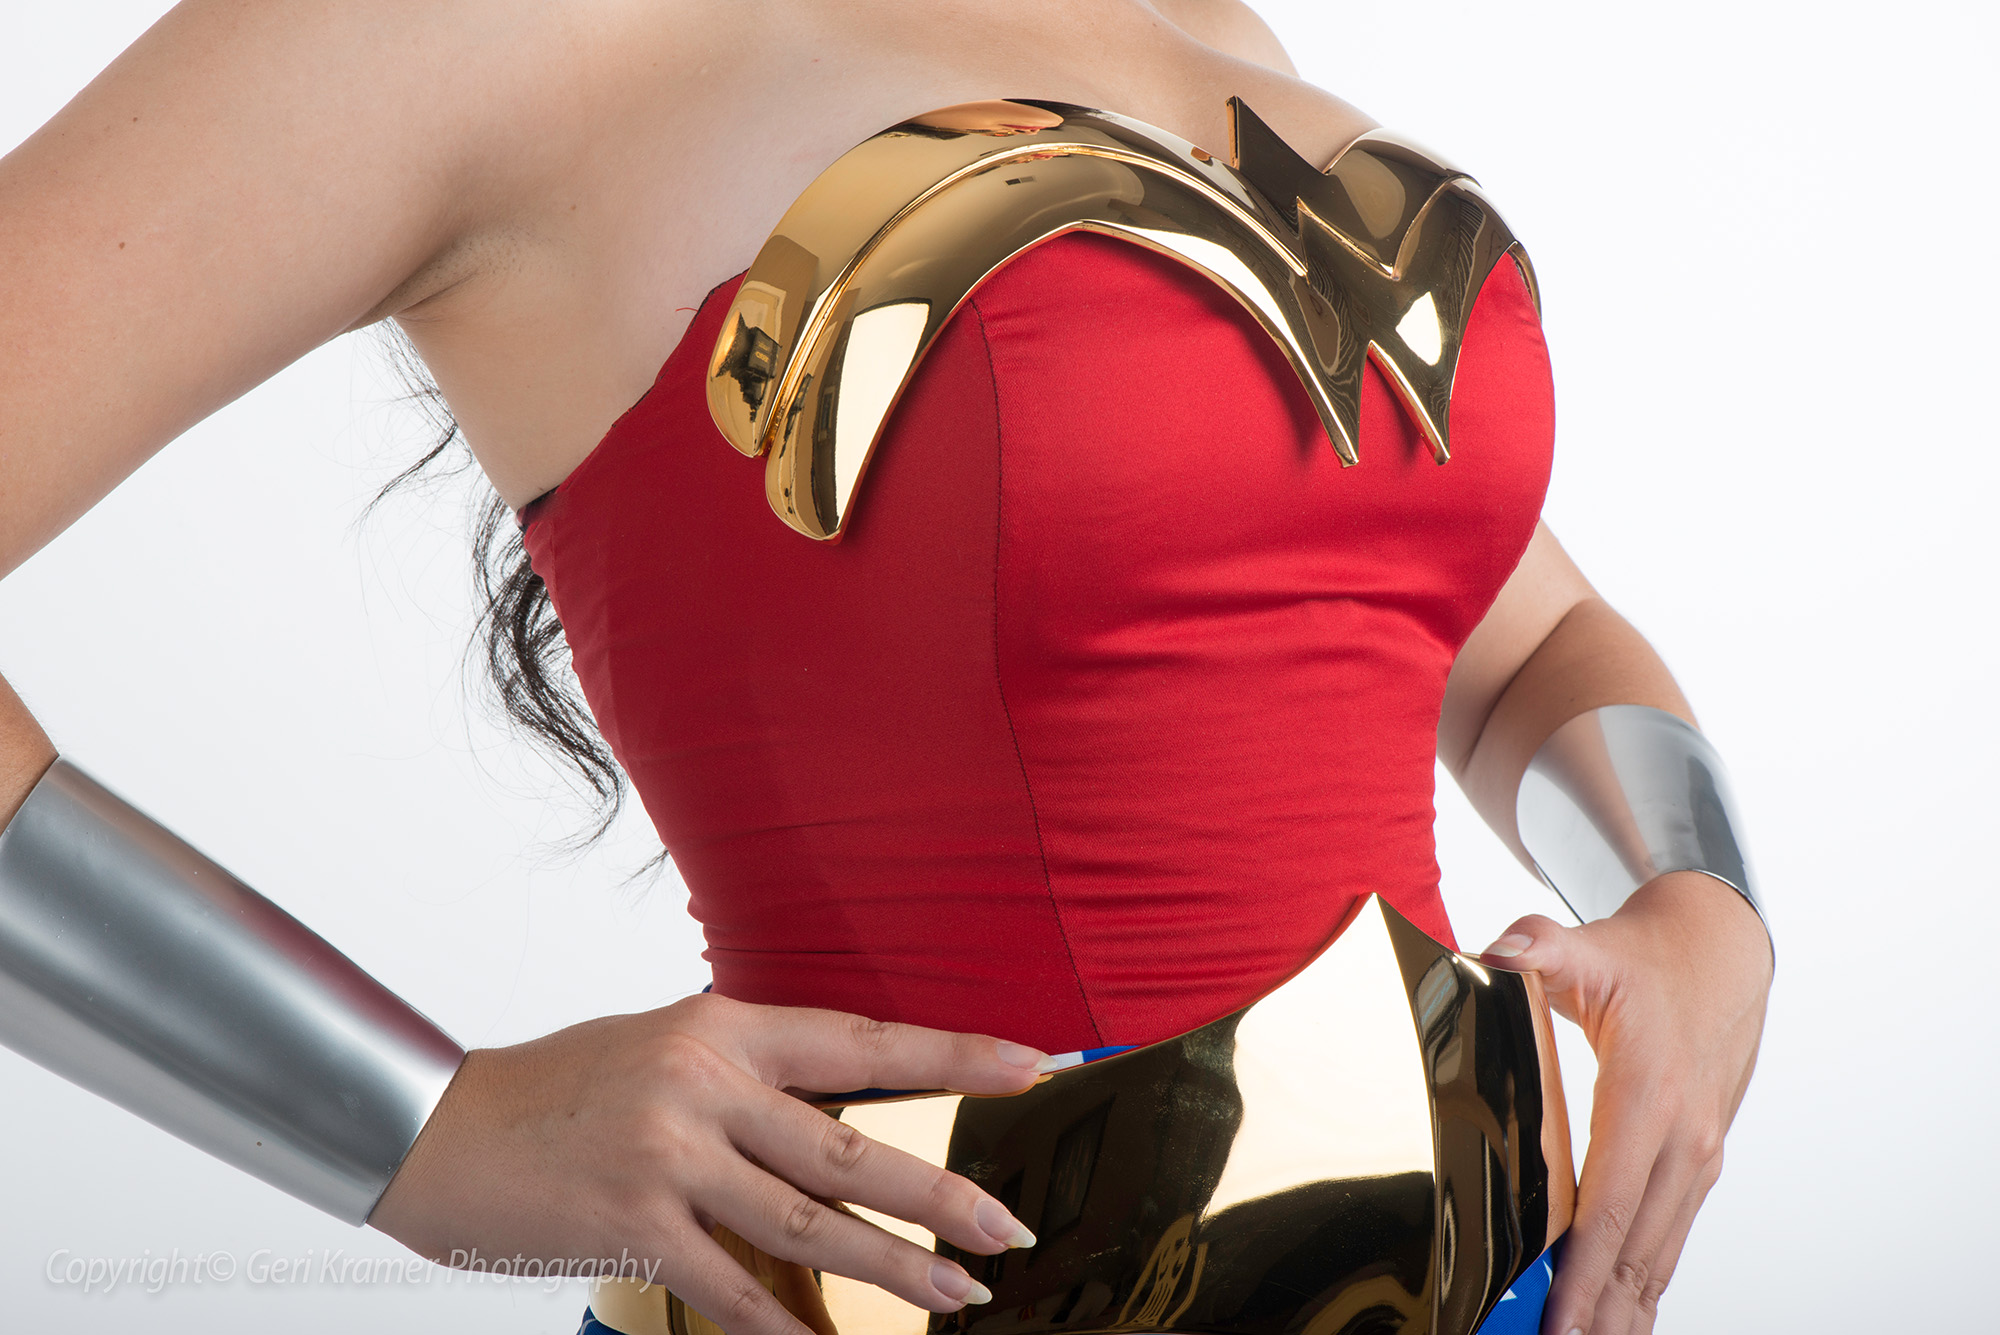 Wonder_Woman-Geri_Kramer (8)